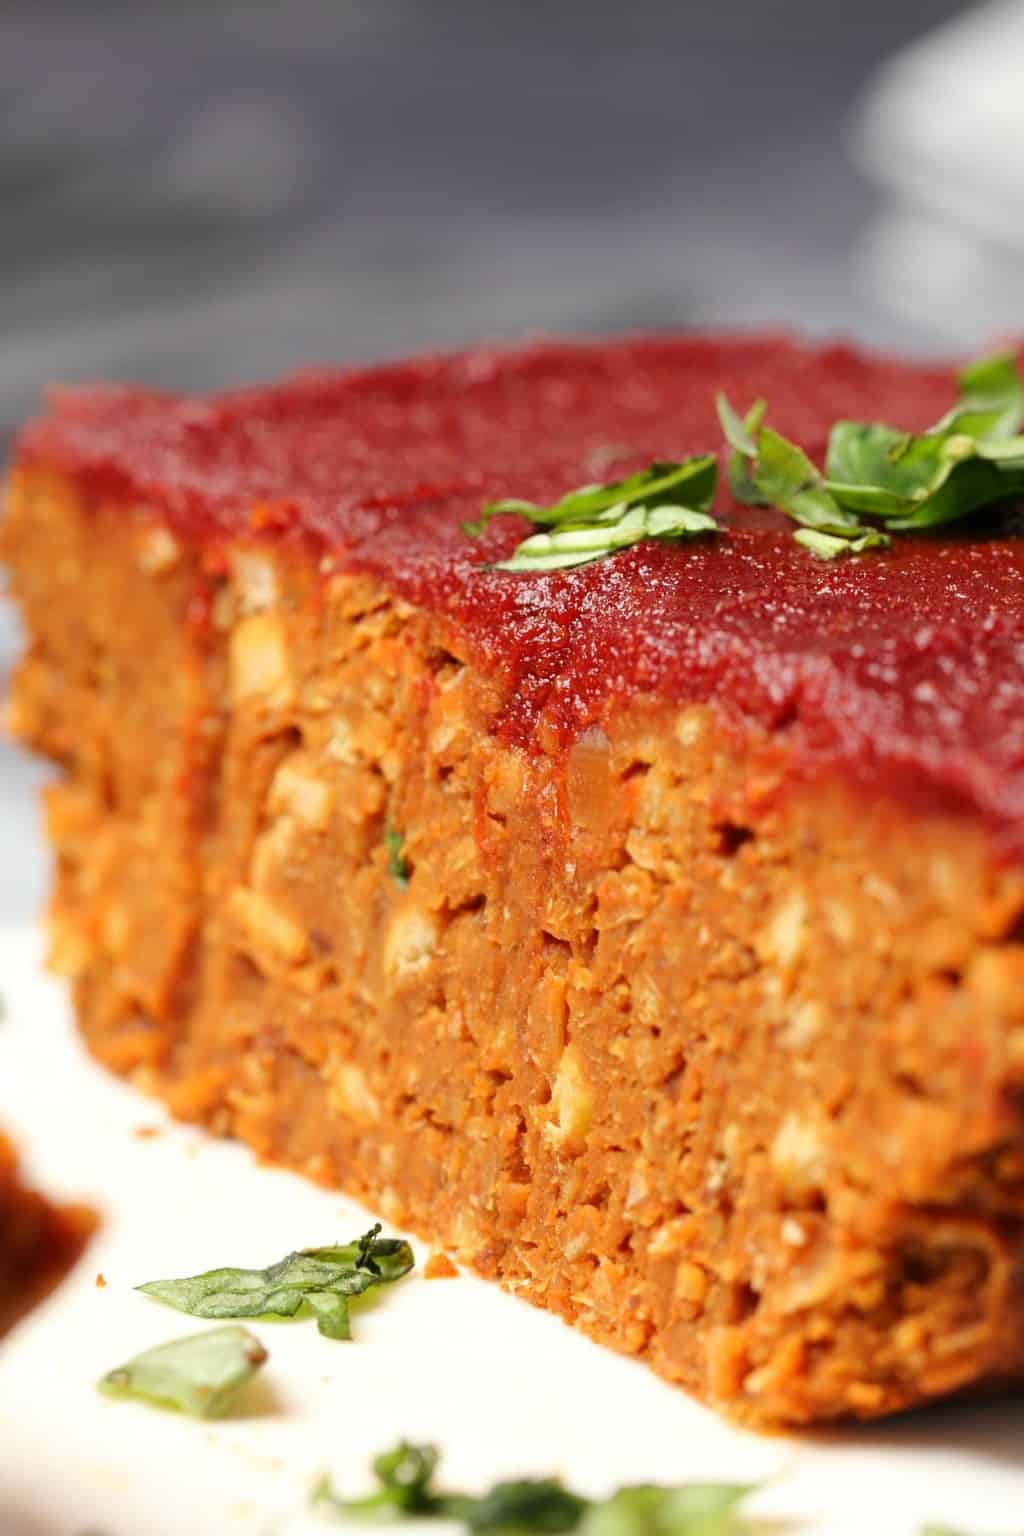 Vegan meatloaf topped with a tomato glaze and fresh basil on a white plate.